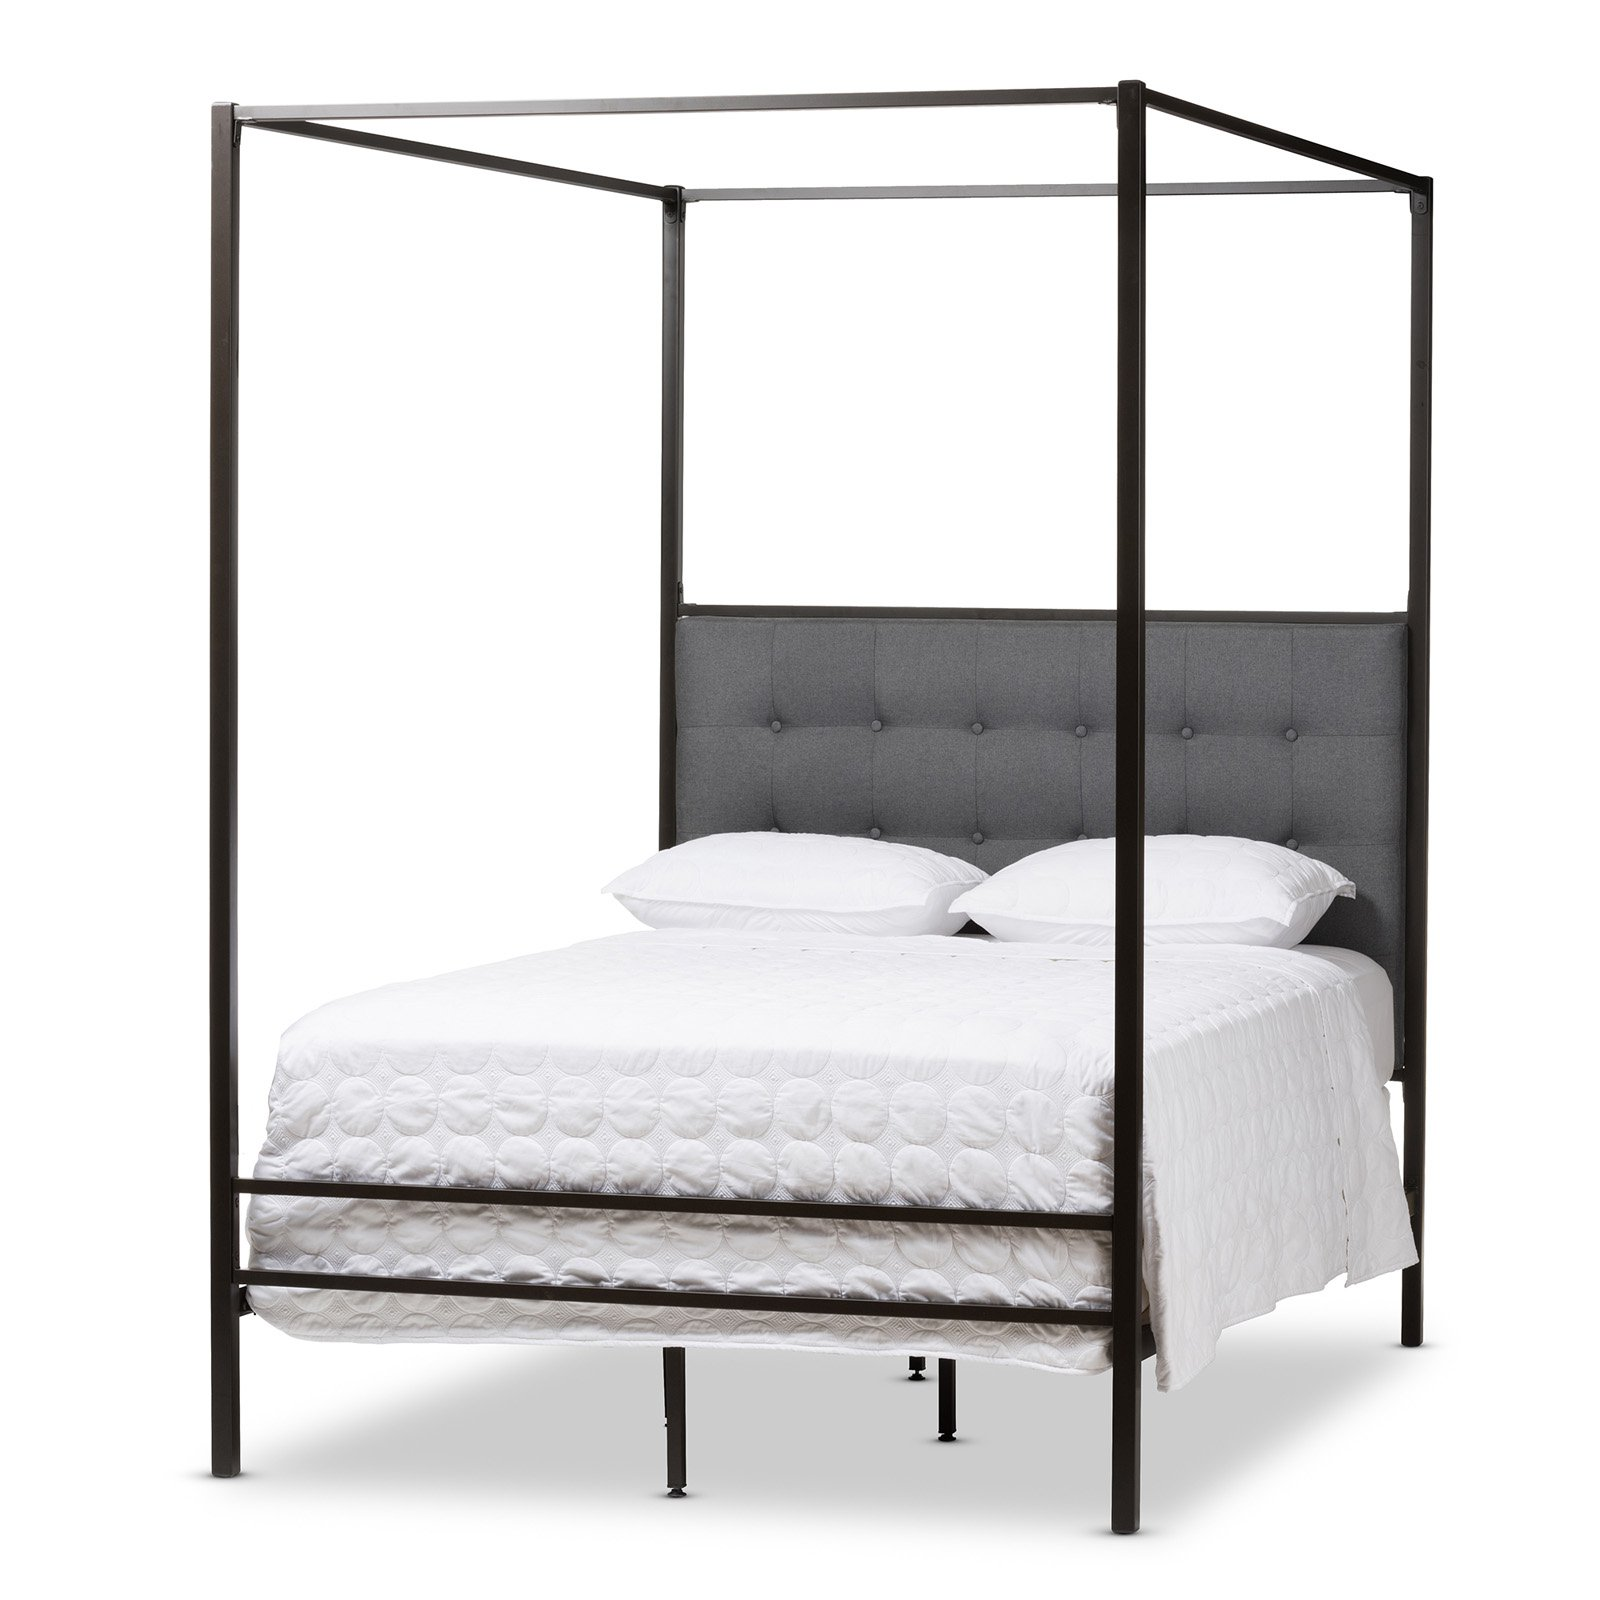 Baxton Studio Eleanor Vintage Black Finished Metal Canopy Queen Bed